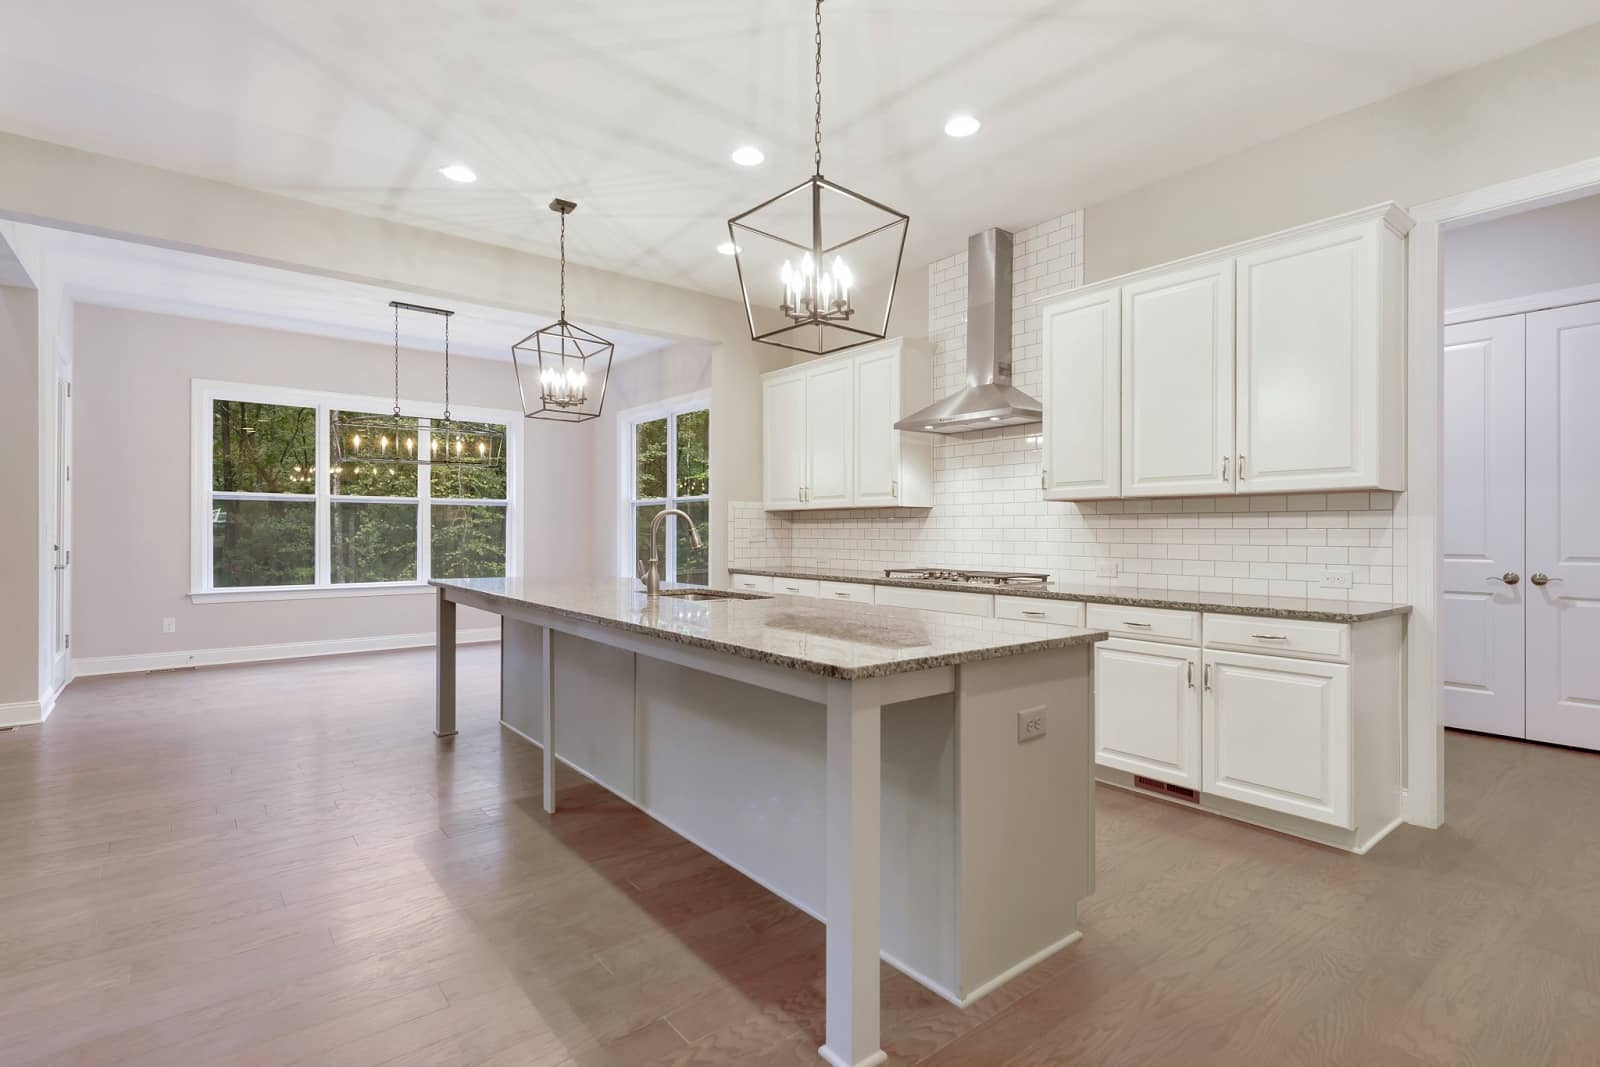 Real Estate Photography in Rock Hill - NC - USA - Kitchen View